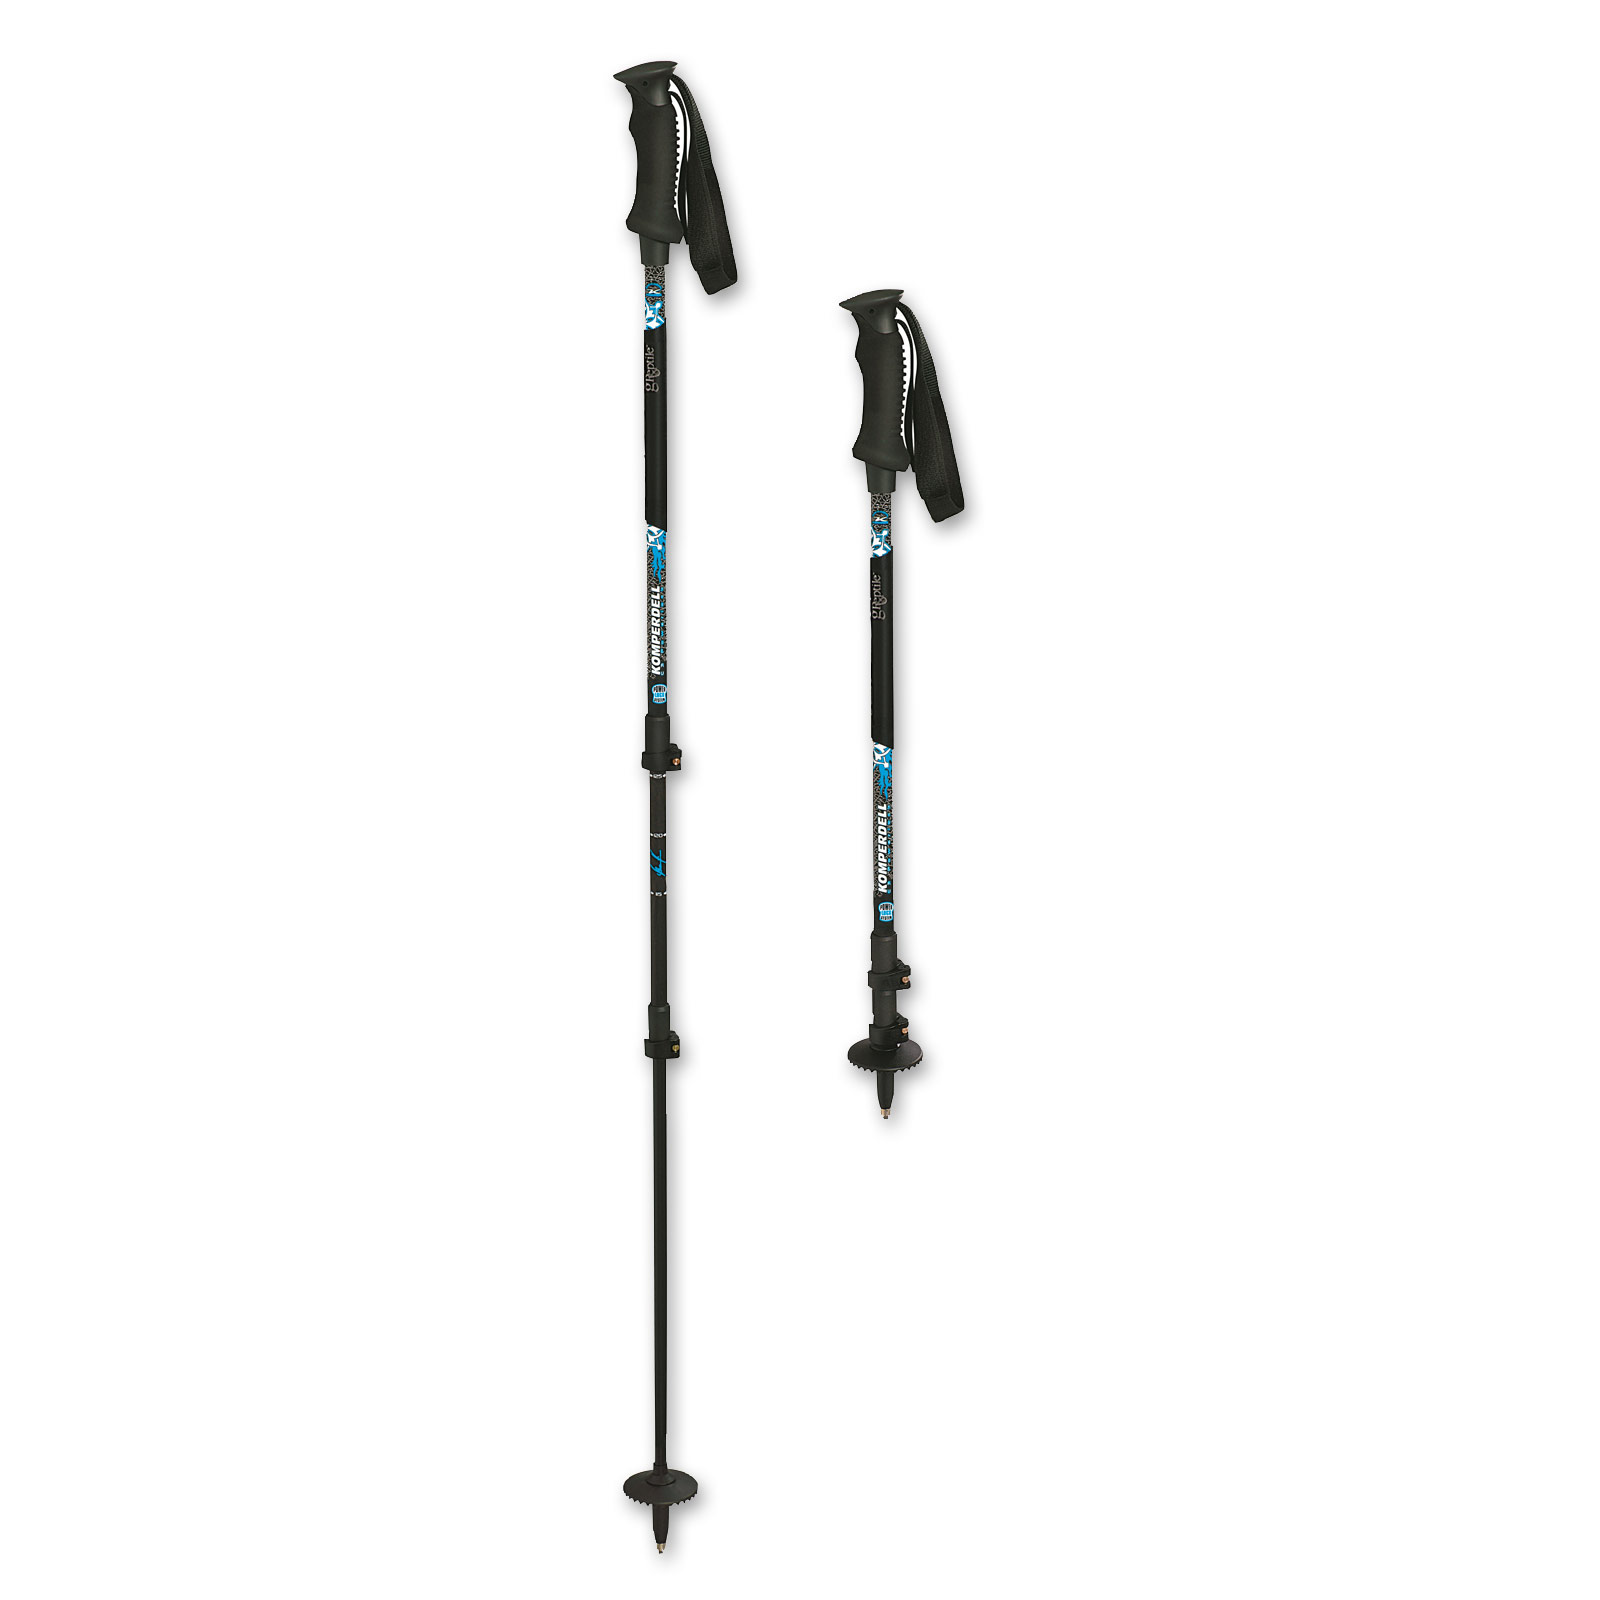 Carbon Power Lock Trekking Poles